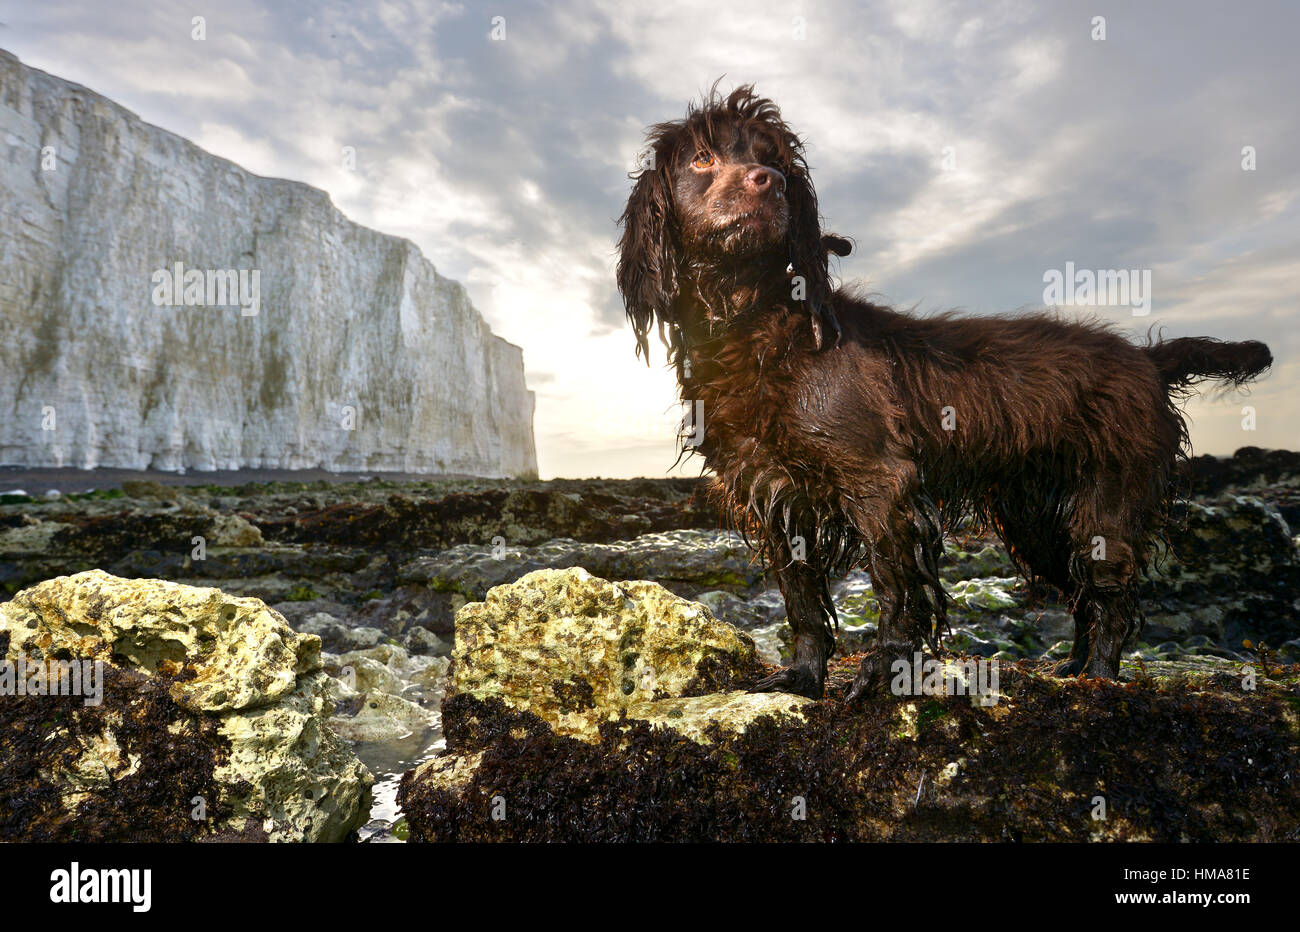 Birling Gap, East Sussex. 2º de febrero de 2017. Cocker Spaniel húmeda, Fudge, al amanecer, debajo de Imagen De Stock